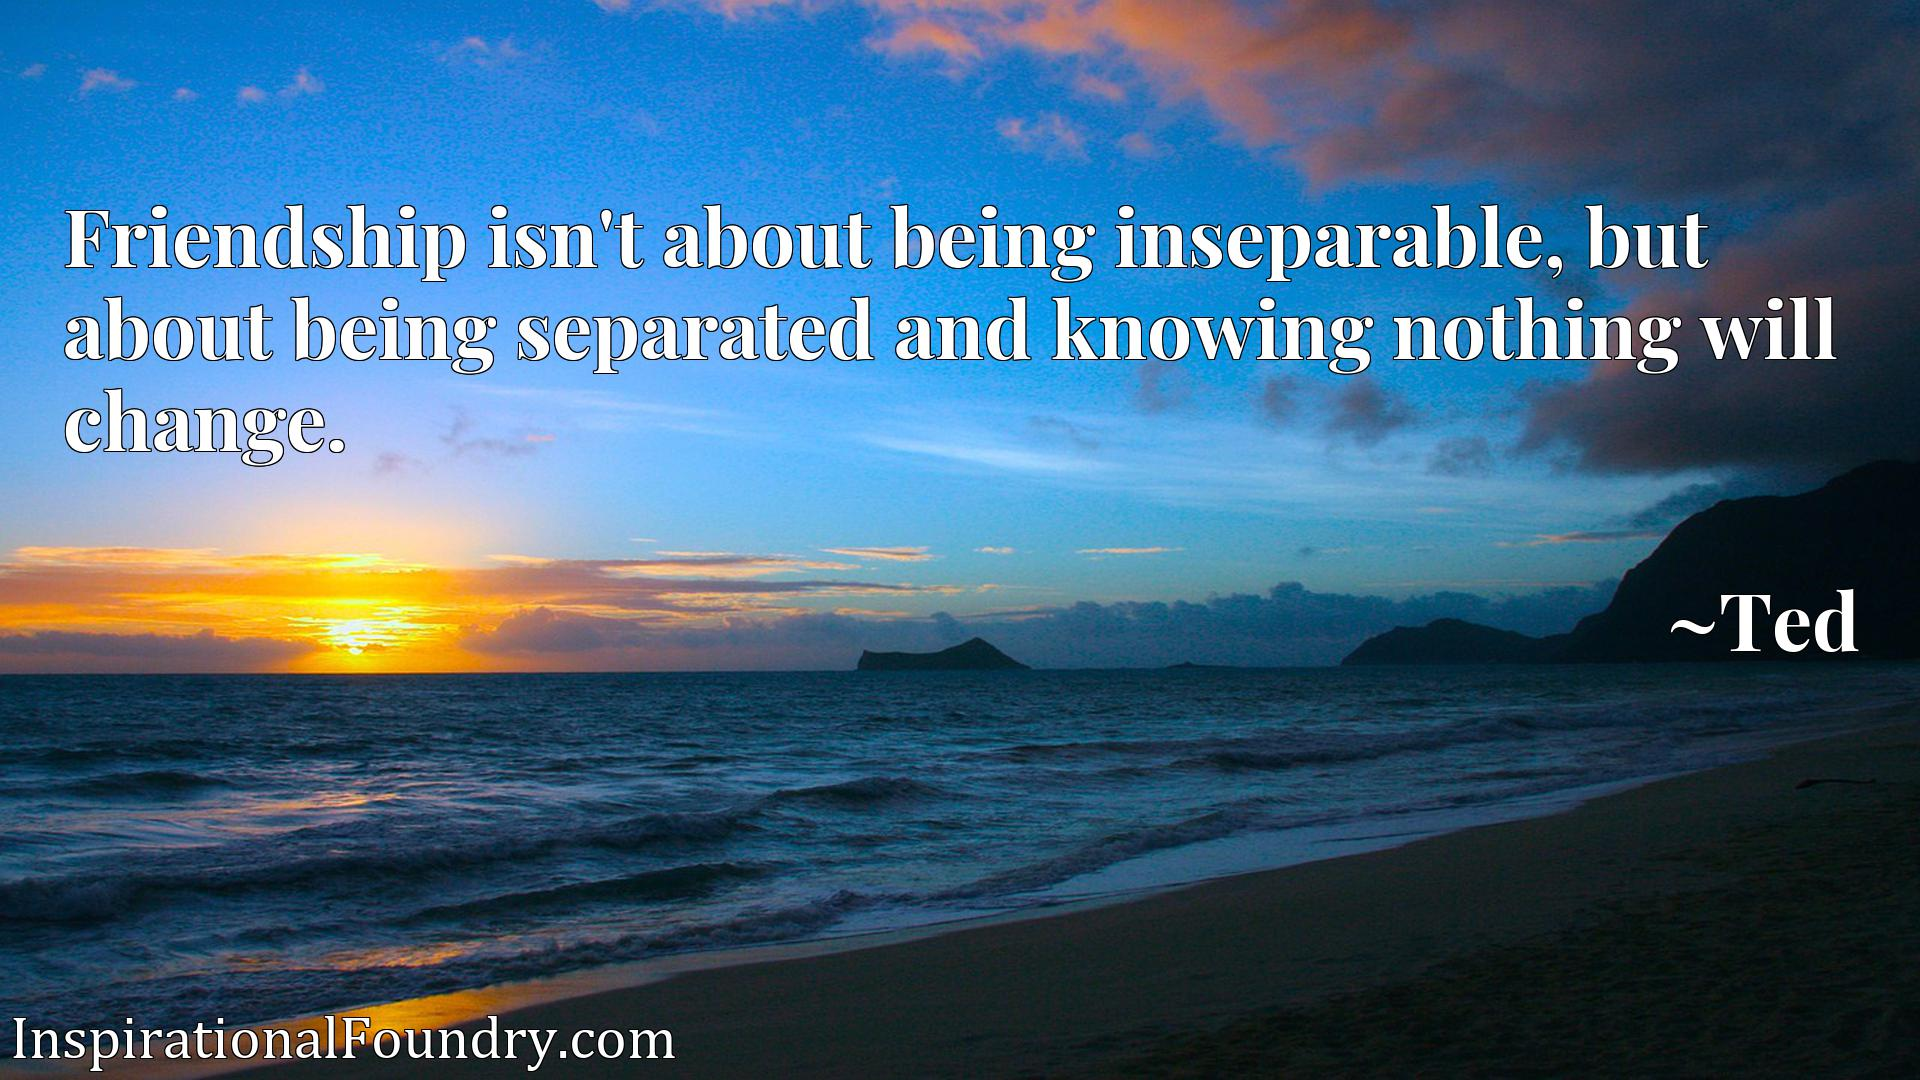 Friendship isn't about being inseparable, but about being separated and knowing nothing will change.